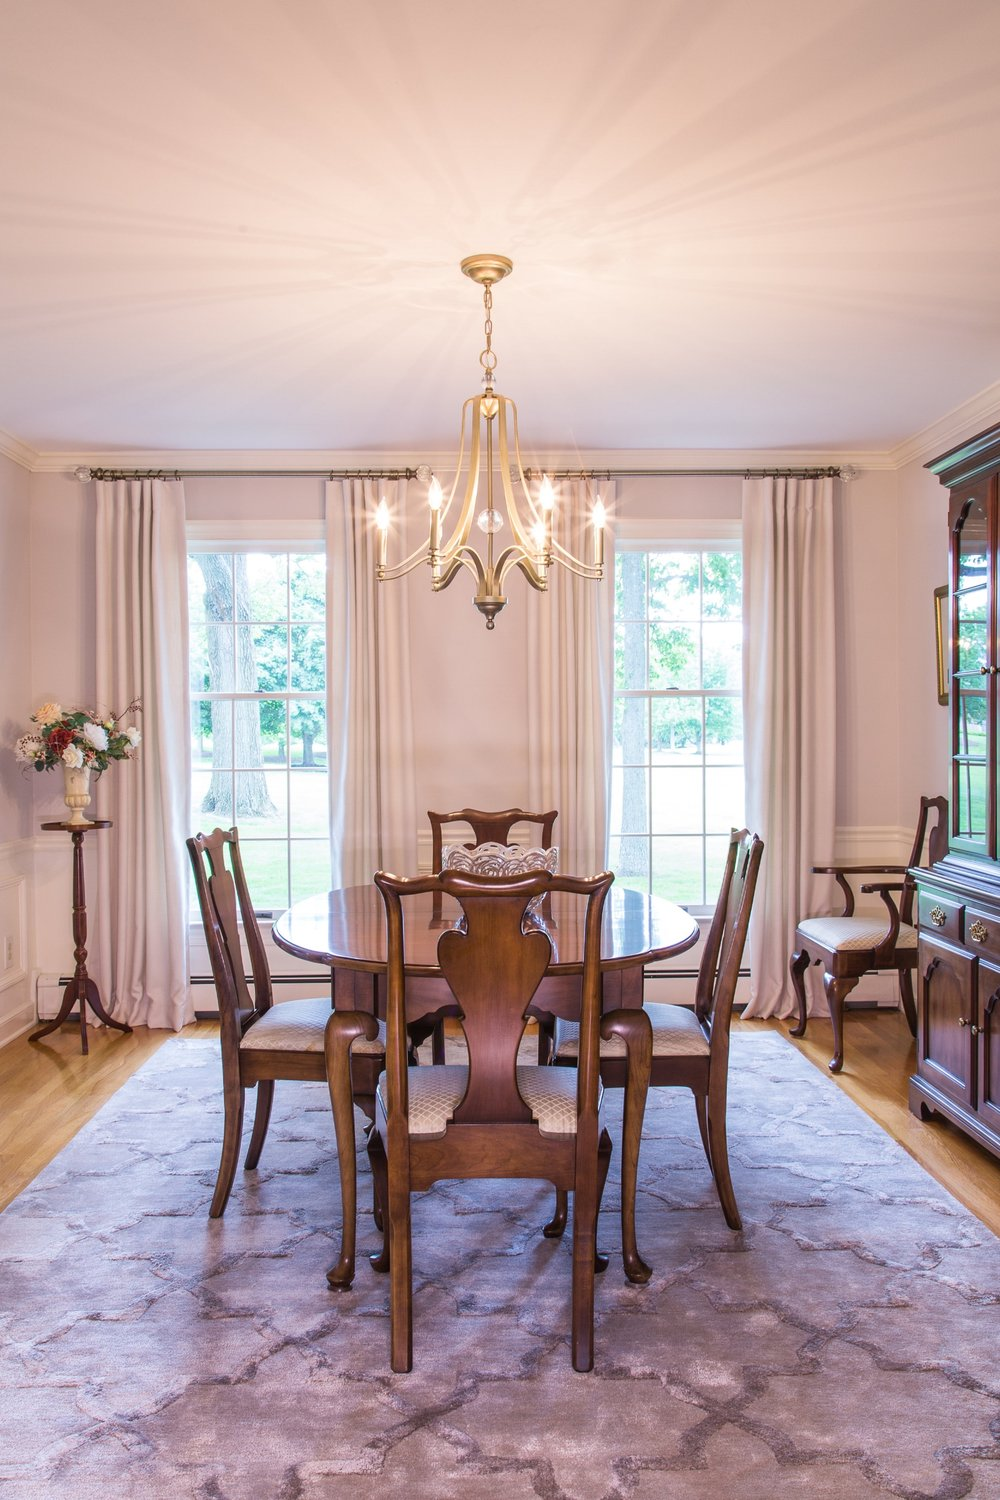 A lovely lilac-gray paint color replaced striped wallpaper to give this Dining Room a light, airy feel, Bucks County, PA